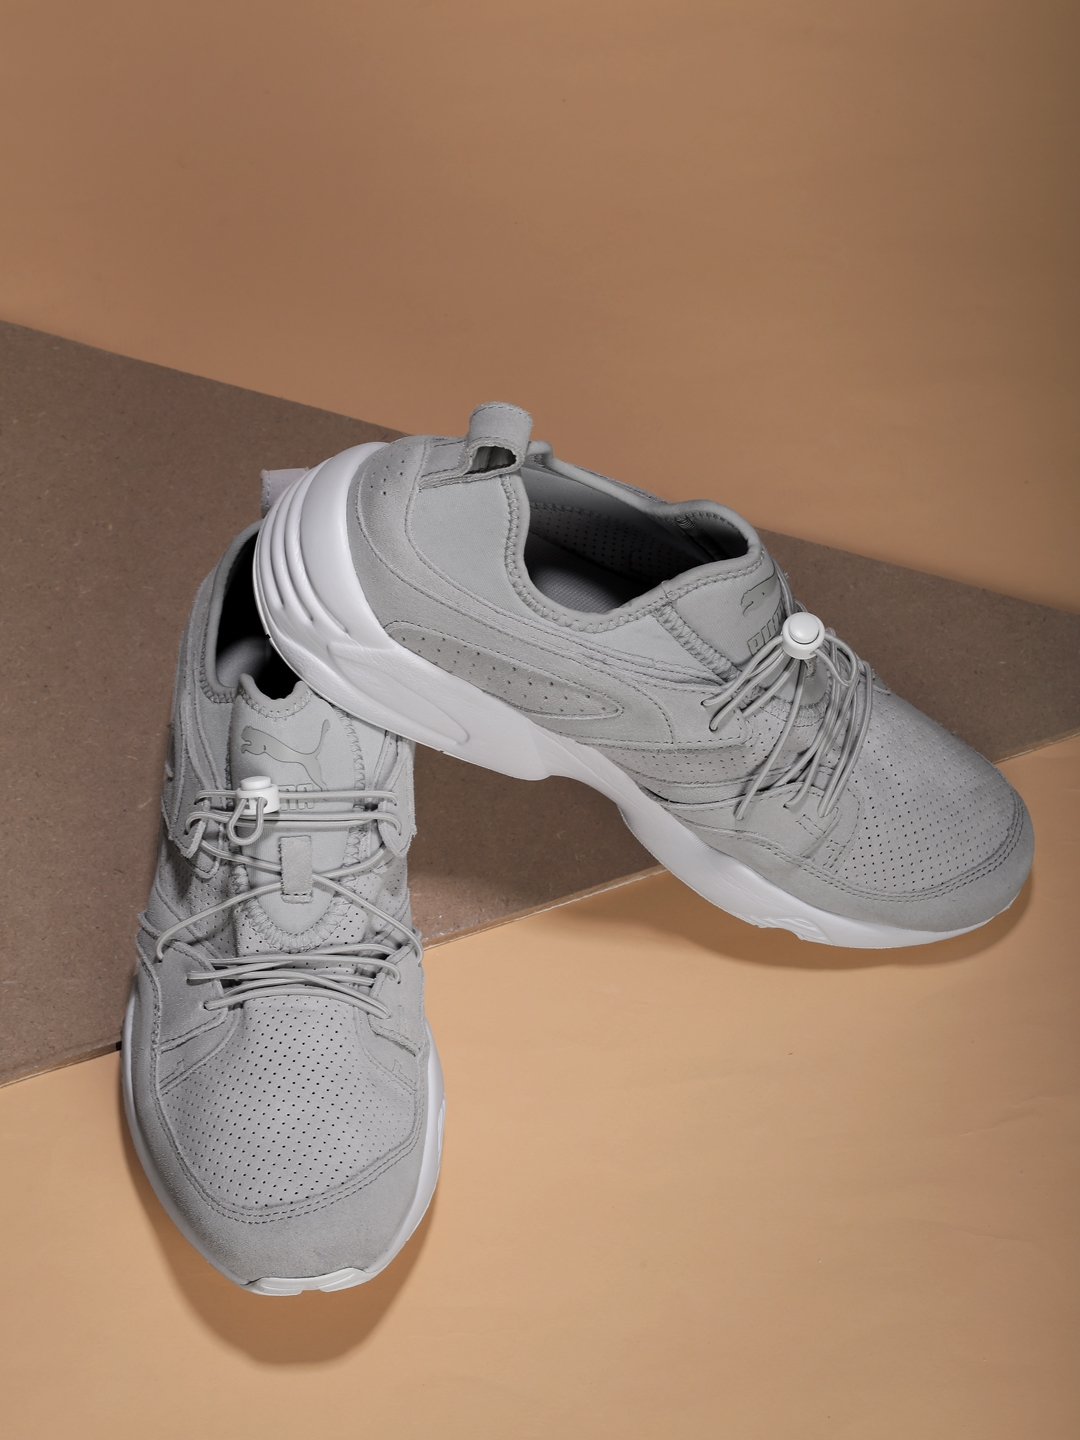 Buy Puma Men Grey Blaze Of Glory SOFT Perforated Leather Sneakers ... 6fd6ff18b